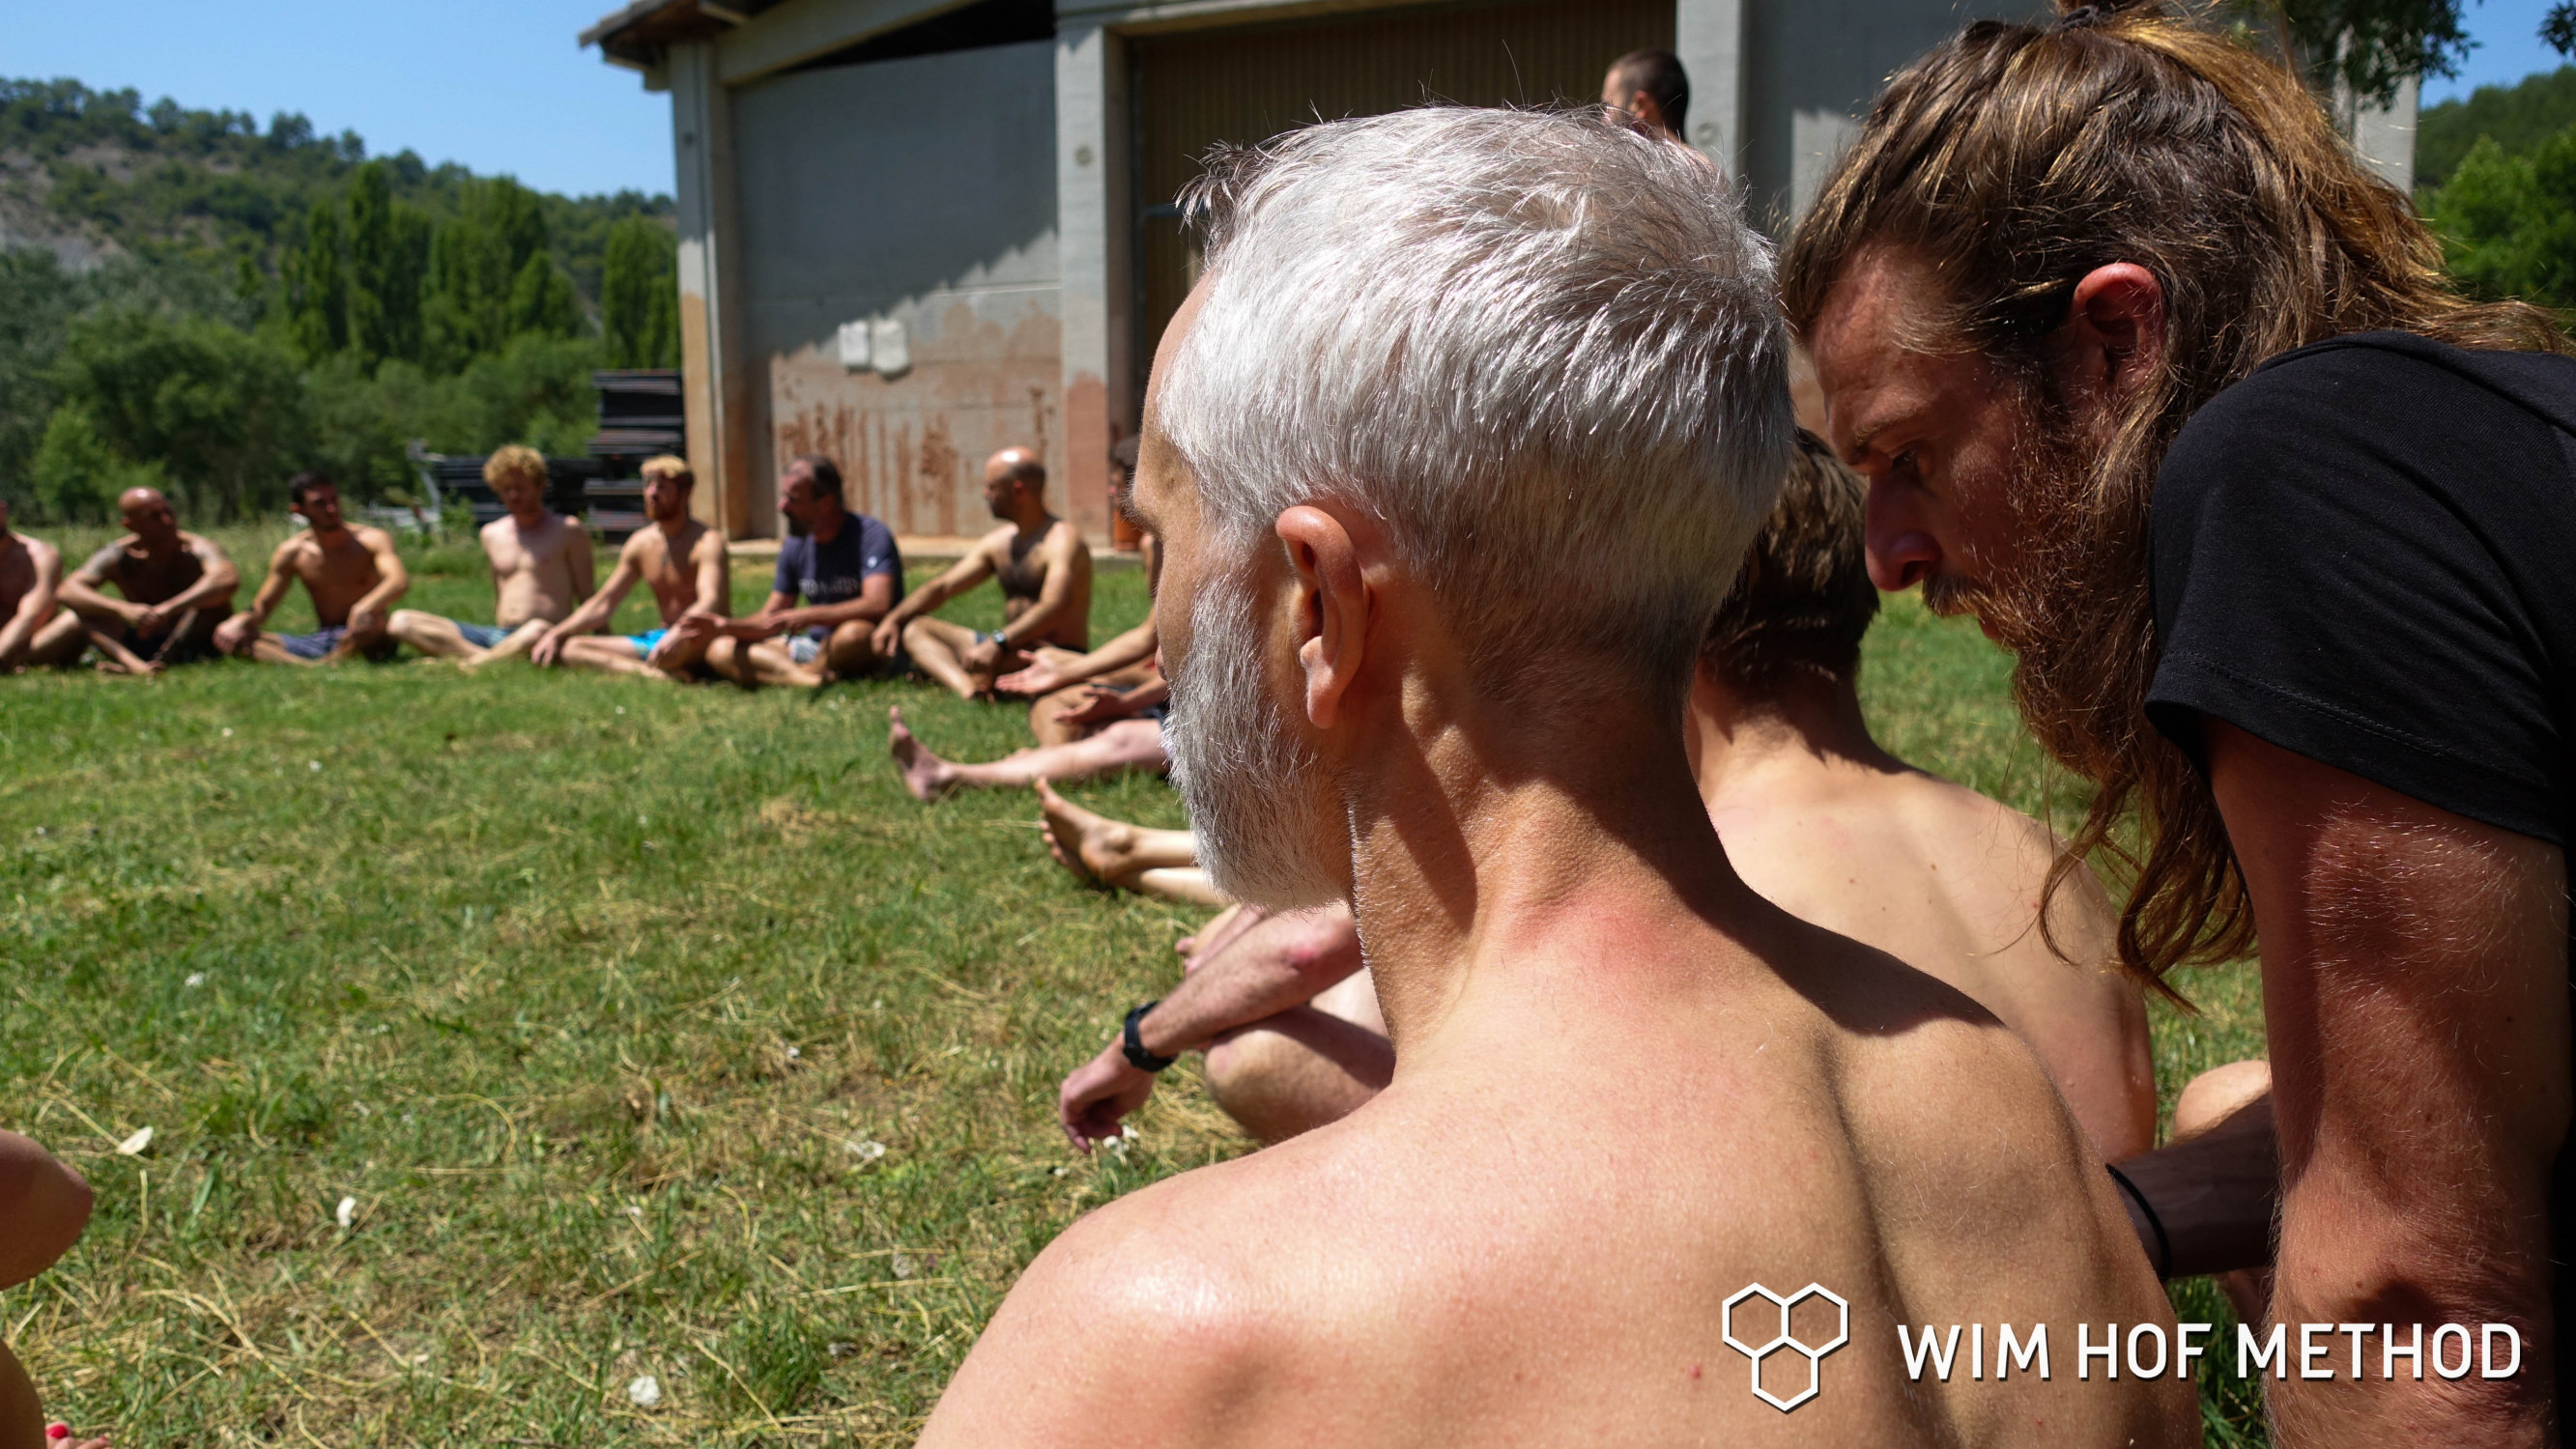 Image 15 of 18 - Experience the Wim Hof Method to get an impression of  at